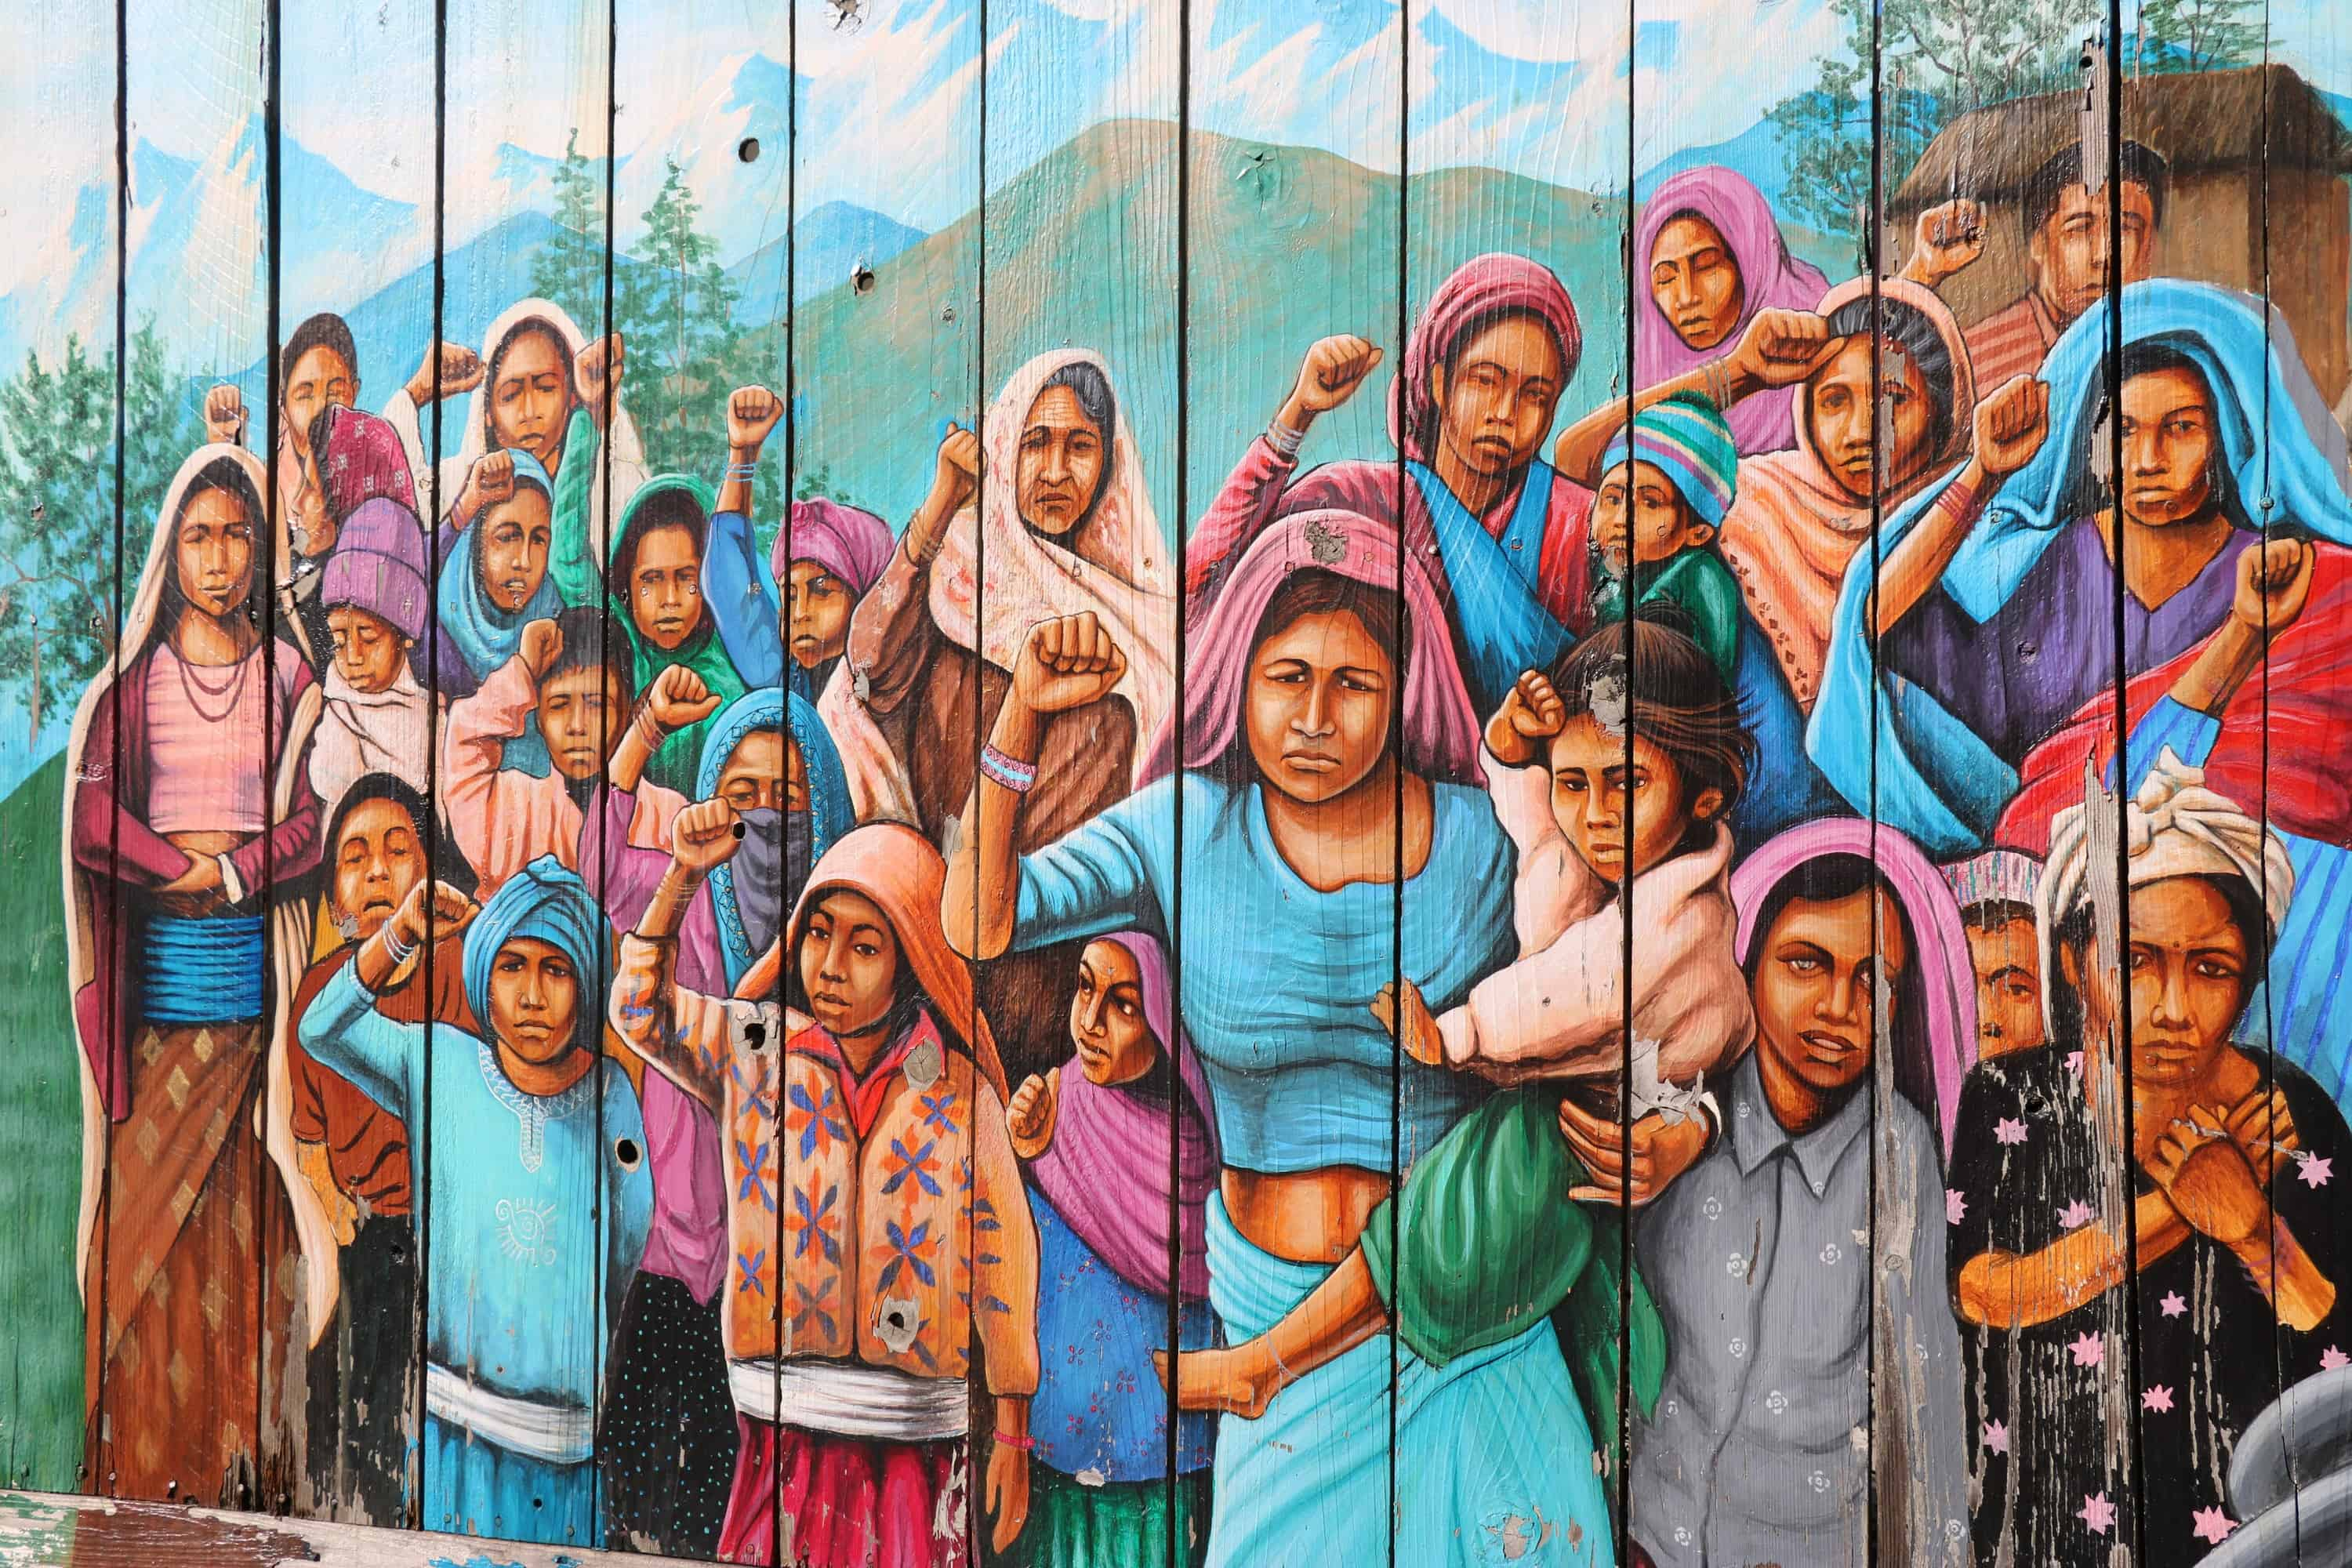 Four Days in San Francisco - Murals of the Mission District